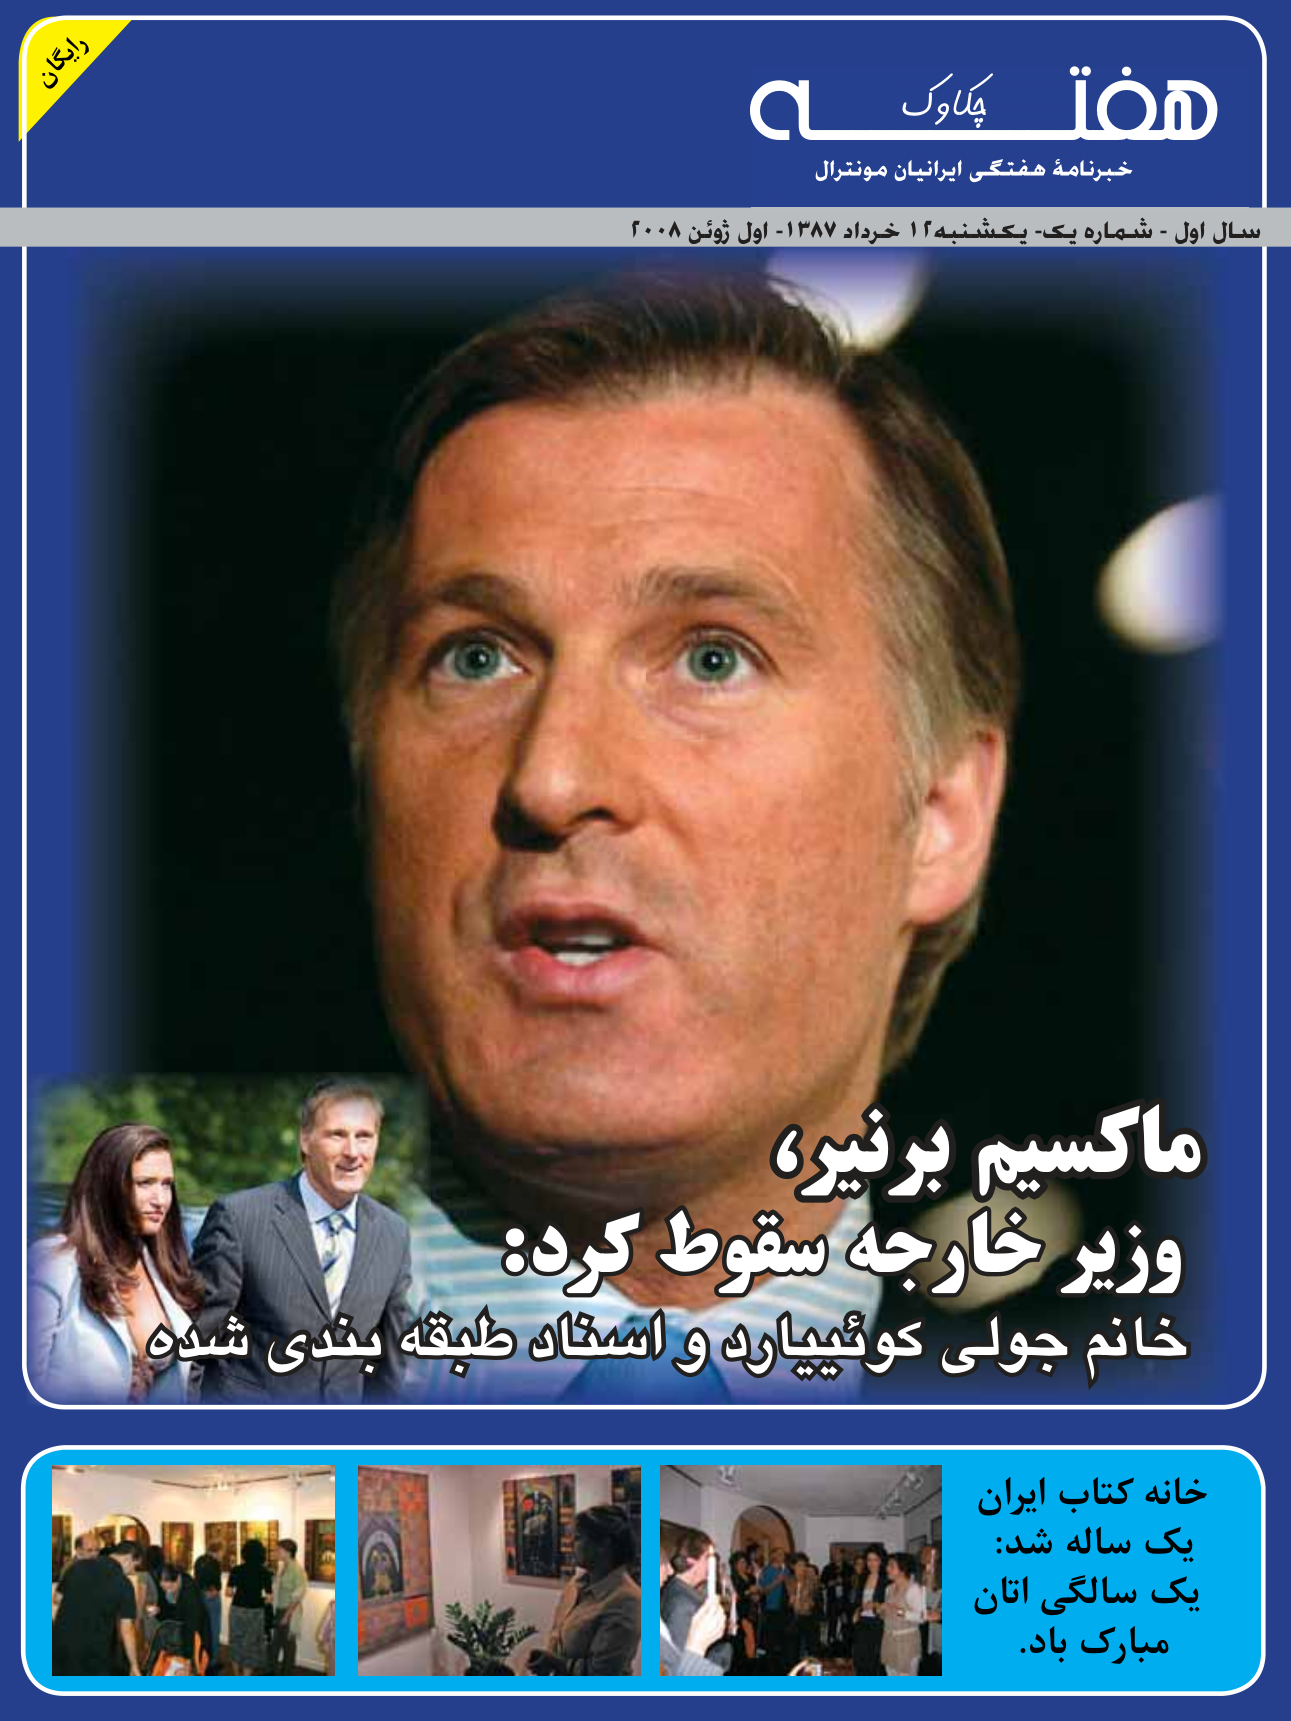 The first issue of HafteH, published on June 1, 2008, covered the resignation of Minister Maxime Bernier